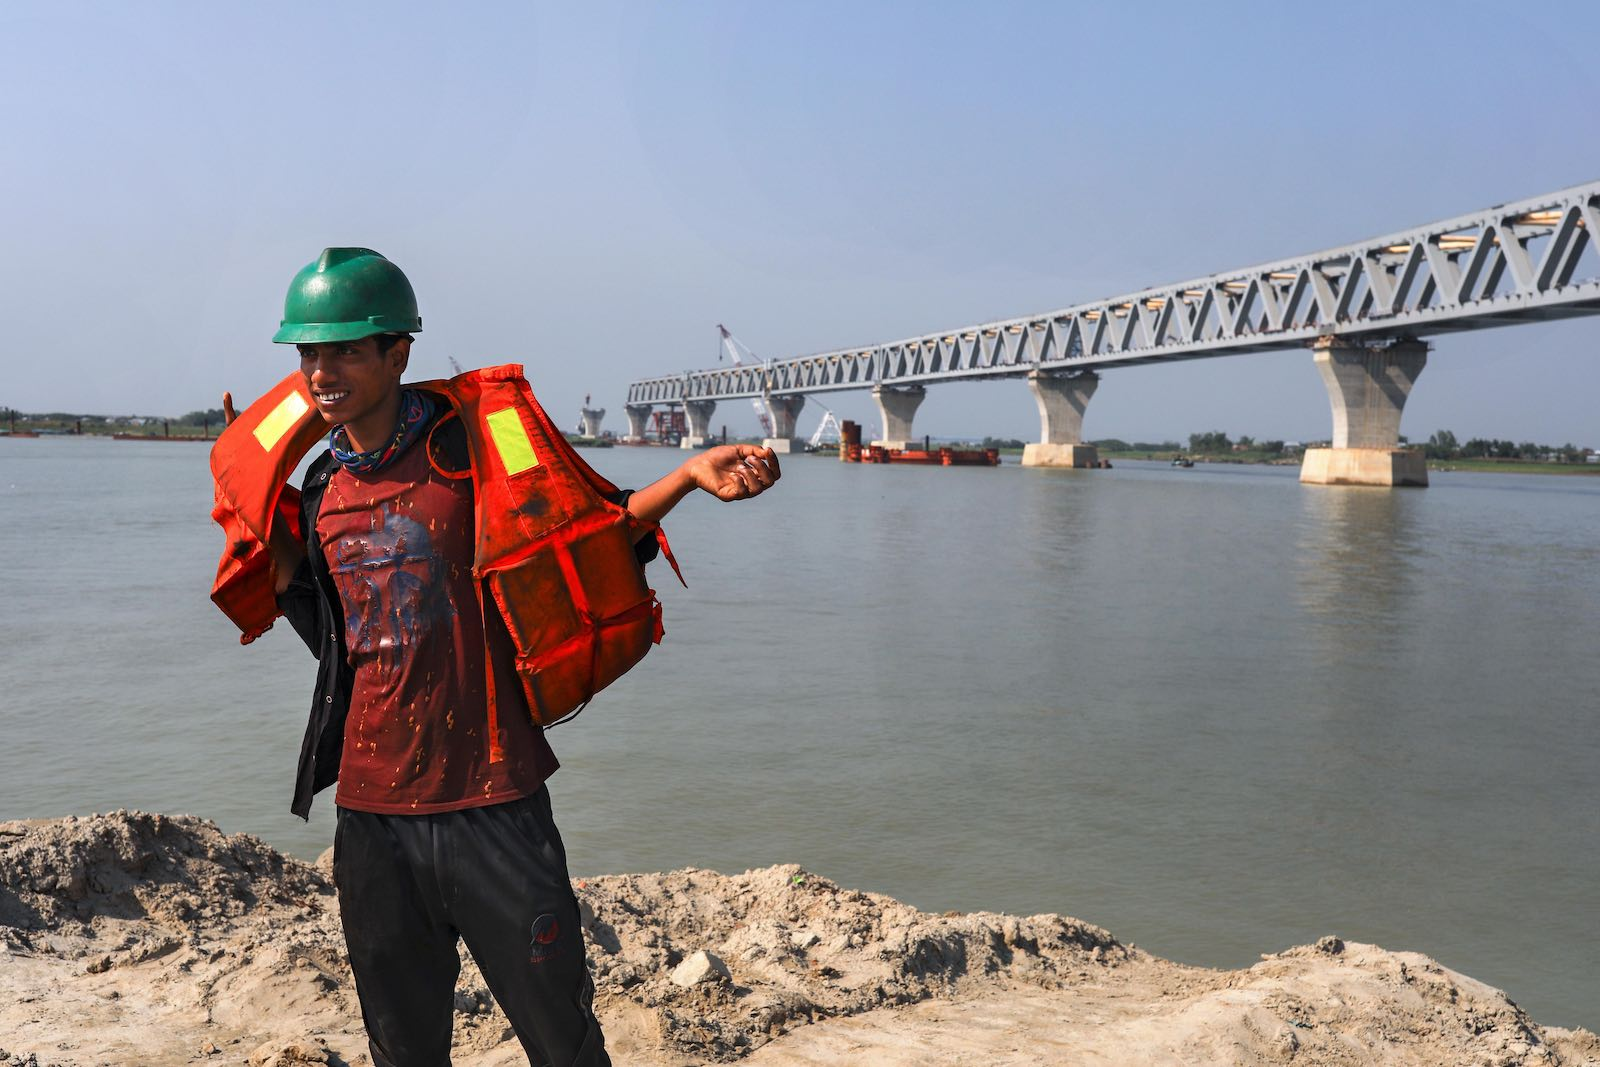 Padma Bridge project, a 6.15-kilometre bridge that will connect the south-west of Bangladesh to the northern and eastern regions (Photo: Kazi Salahuddin Razu via Getty)